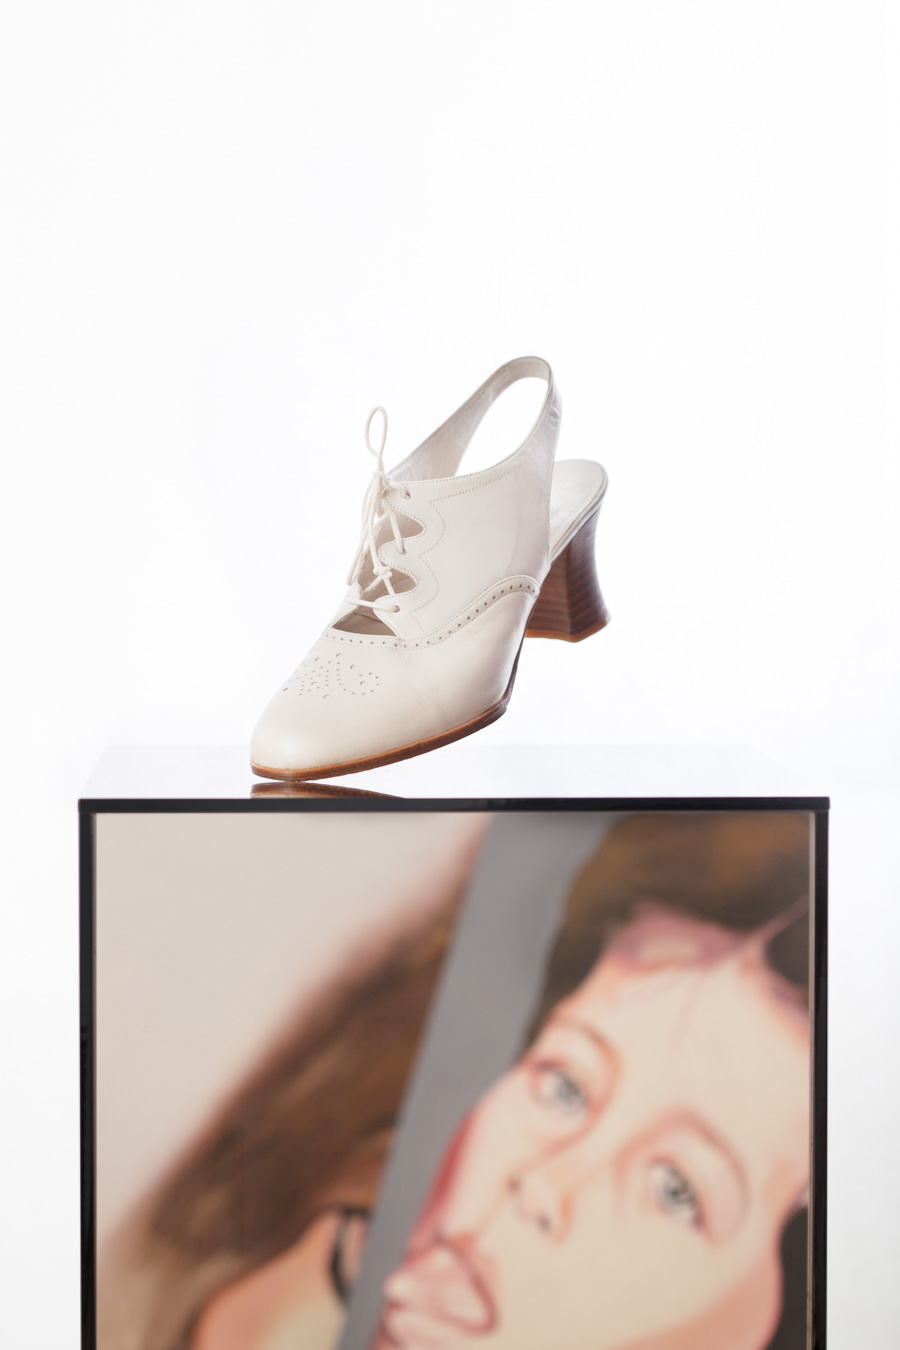 Toronto_Still_Life_Photographer_Joanna_Wojewoda_Second_Cousin_Vintage_Shoes-26.jpg